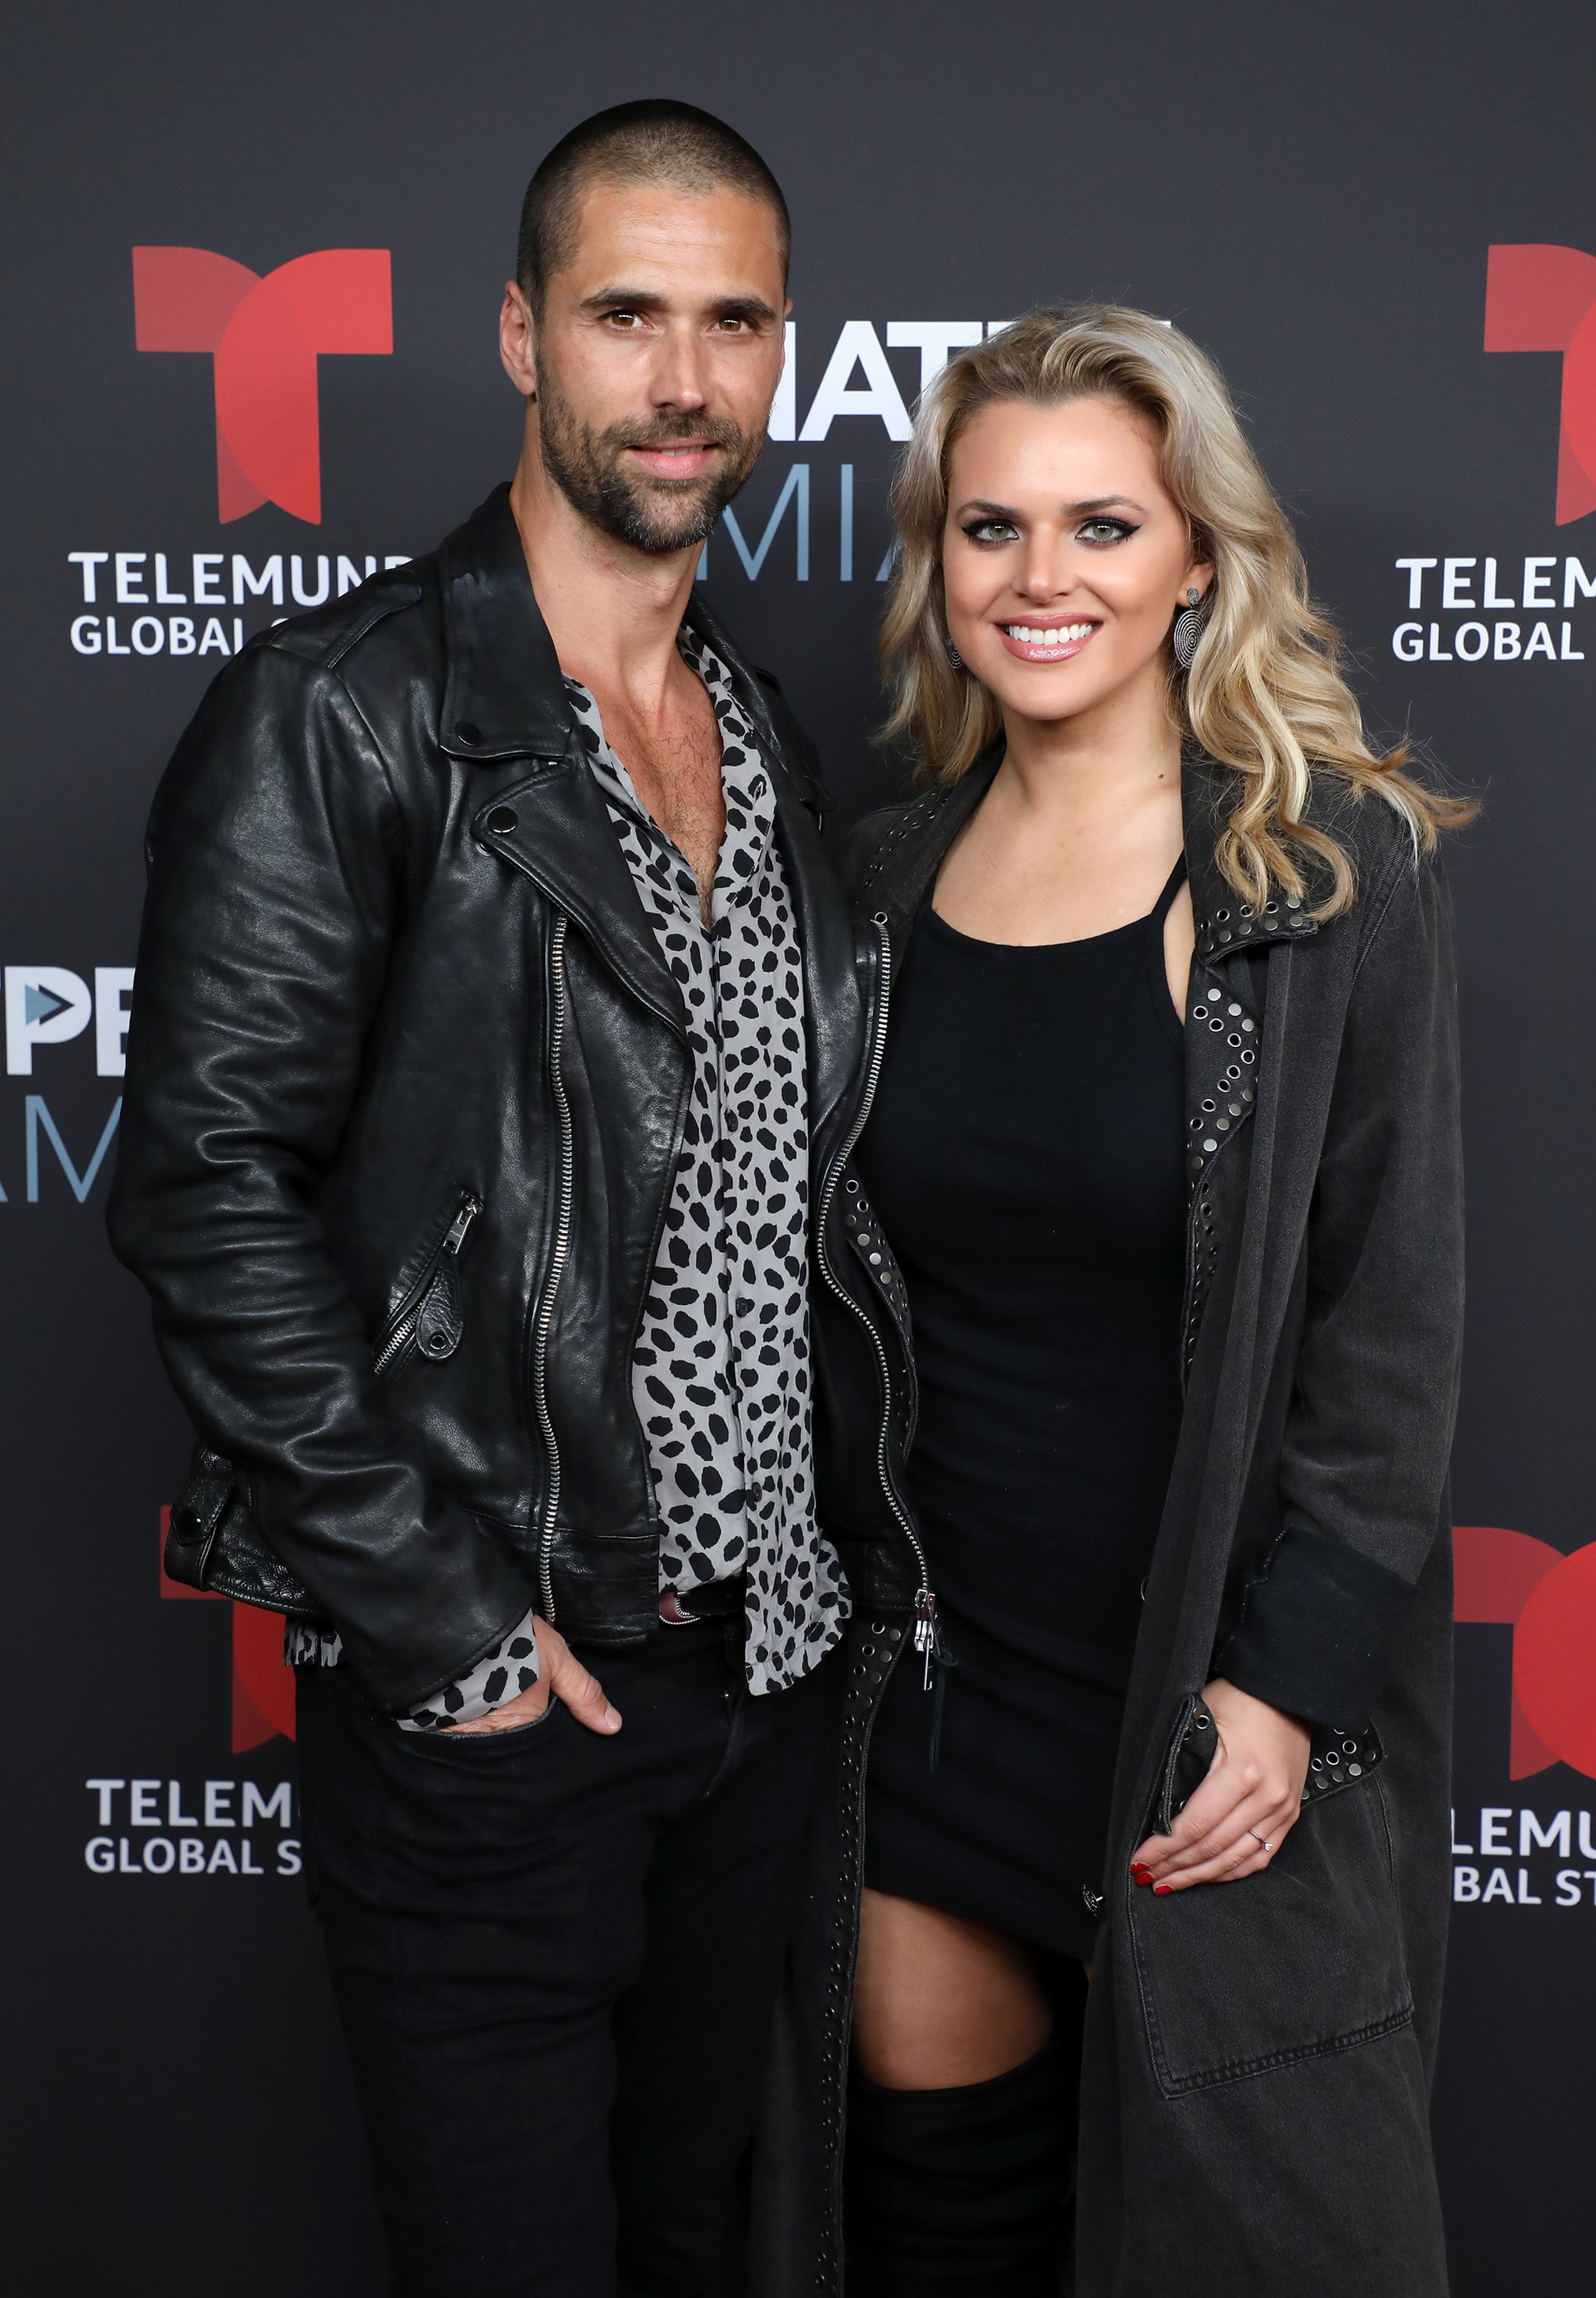 MIAMI BEACH, FL - JANUARY 22:  Matias Novoa and Isabella Castillo arrive at Telemundo Global Studios Celebration during NATPE Miami 2019 at the Eden Roc Hotel on January 22, 2019 in Miami Beach, Florida.  (Photo by Alexander Tamargo/Getty Images)